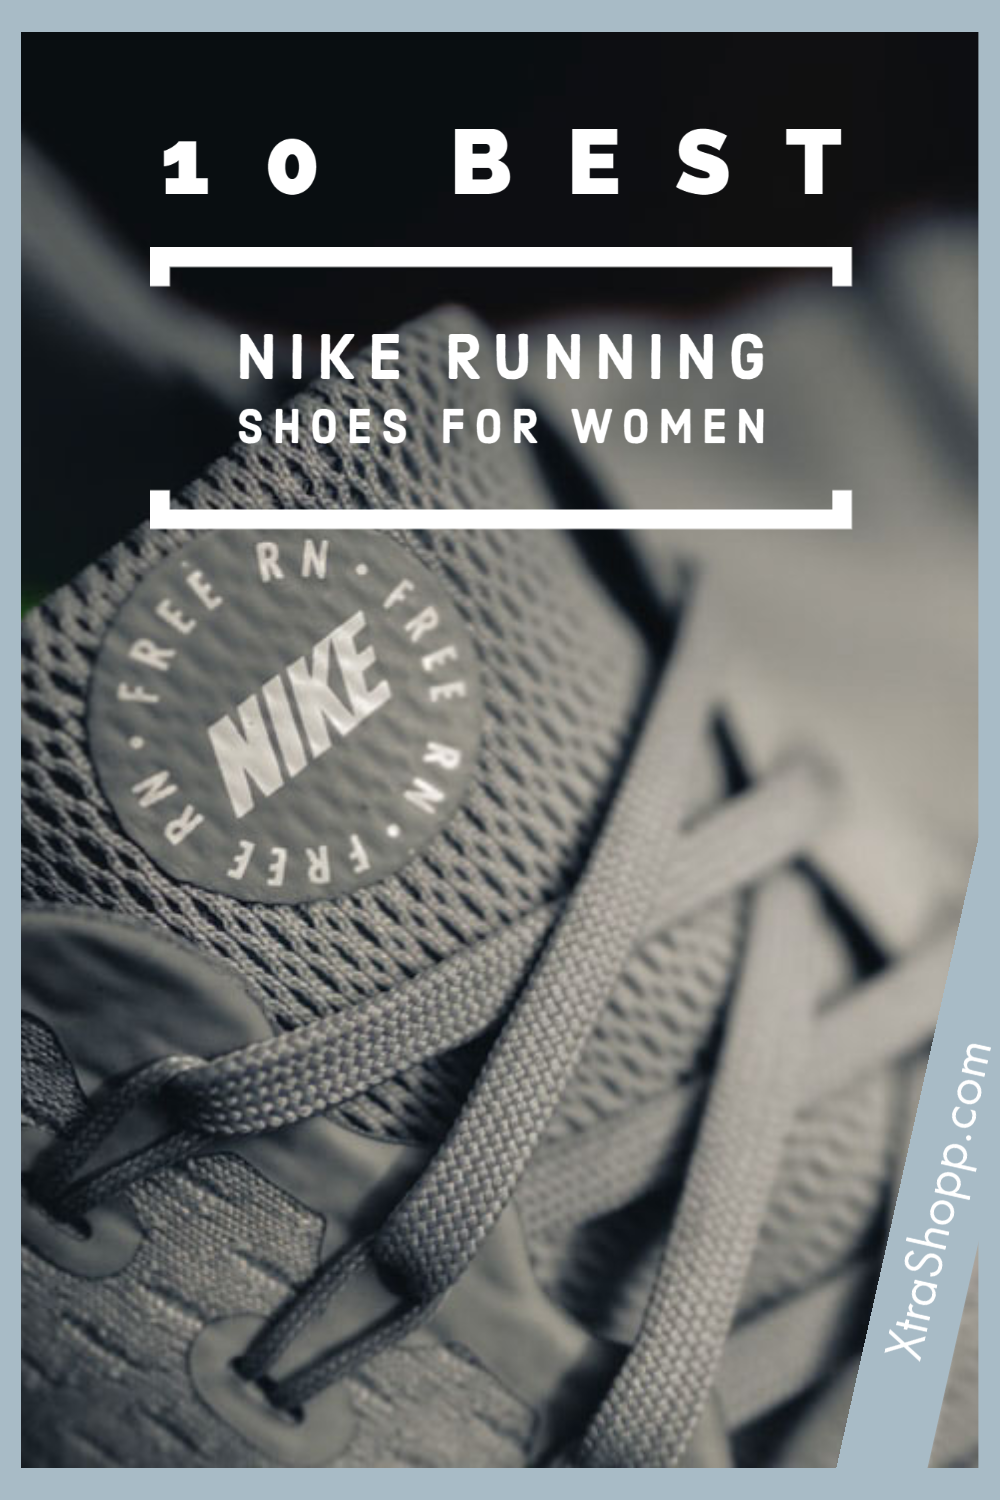 Searching for running shoes? Plus you're a fan of Nike. Here is our selection of Nike Running Shoes for Women in 2020. Click for more details #Shoesforwomen #Nike #Nikeshoes #Nikeshoeswomen